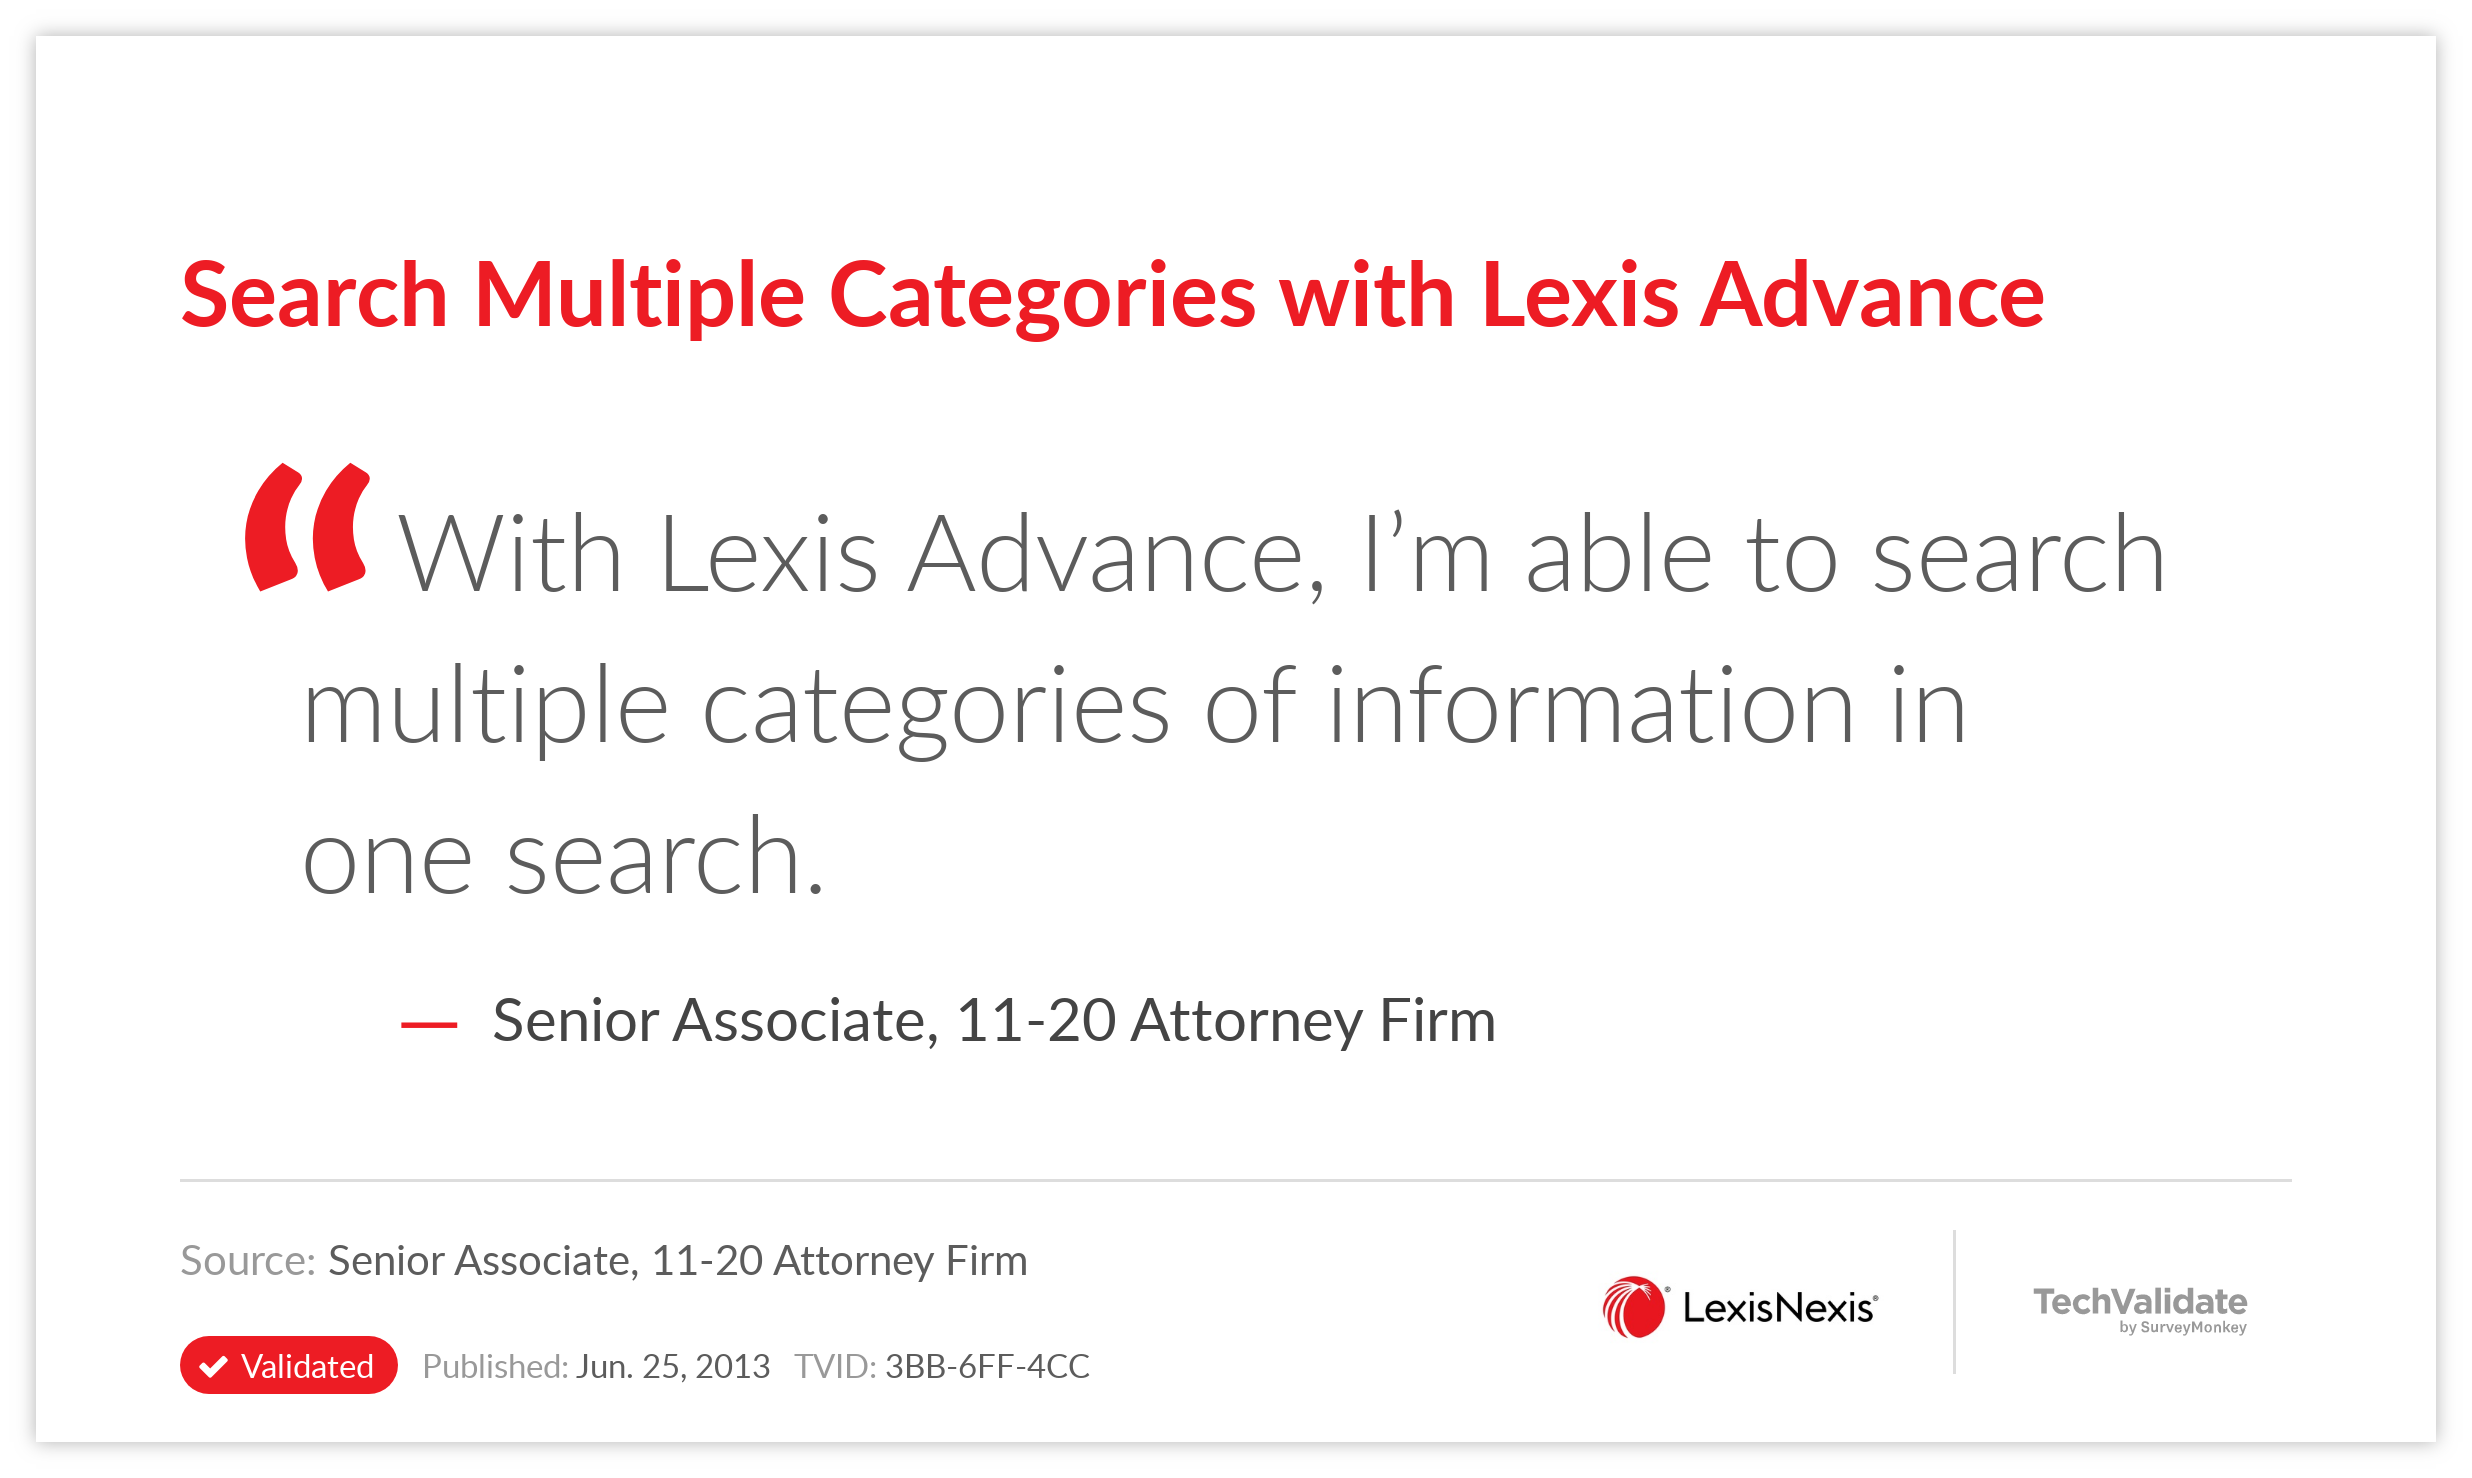 Search Multiple Categories with Lexis Advance